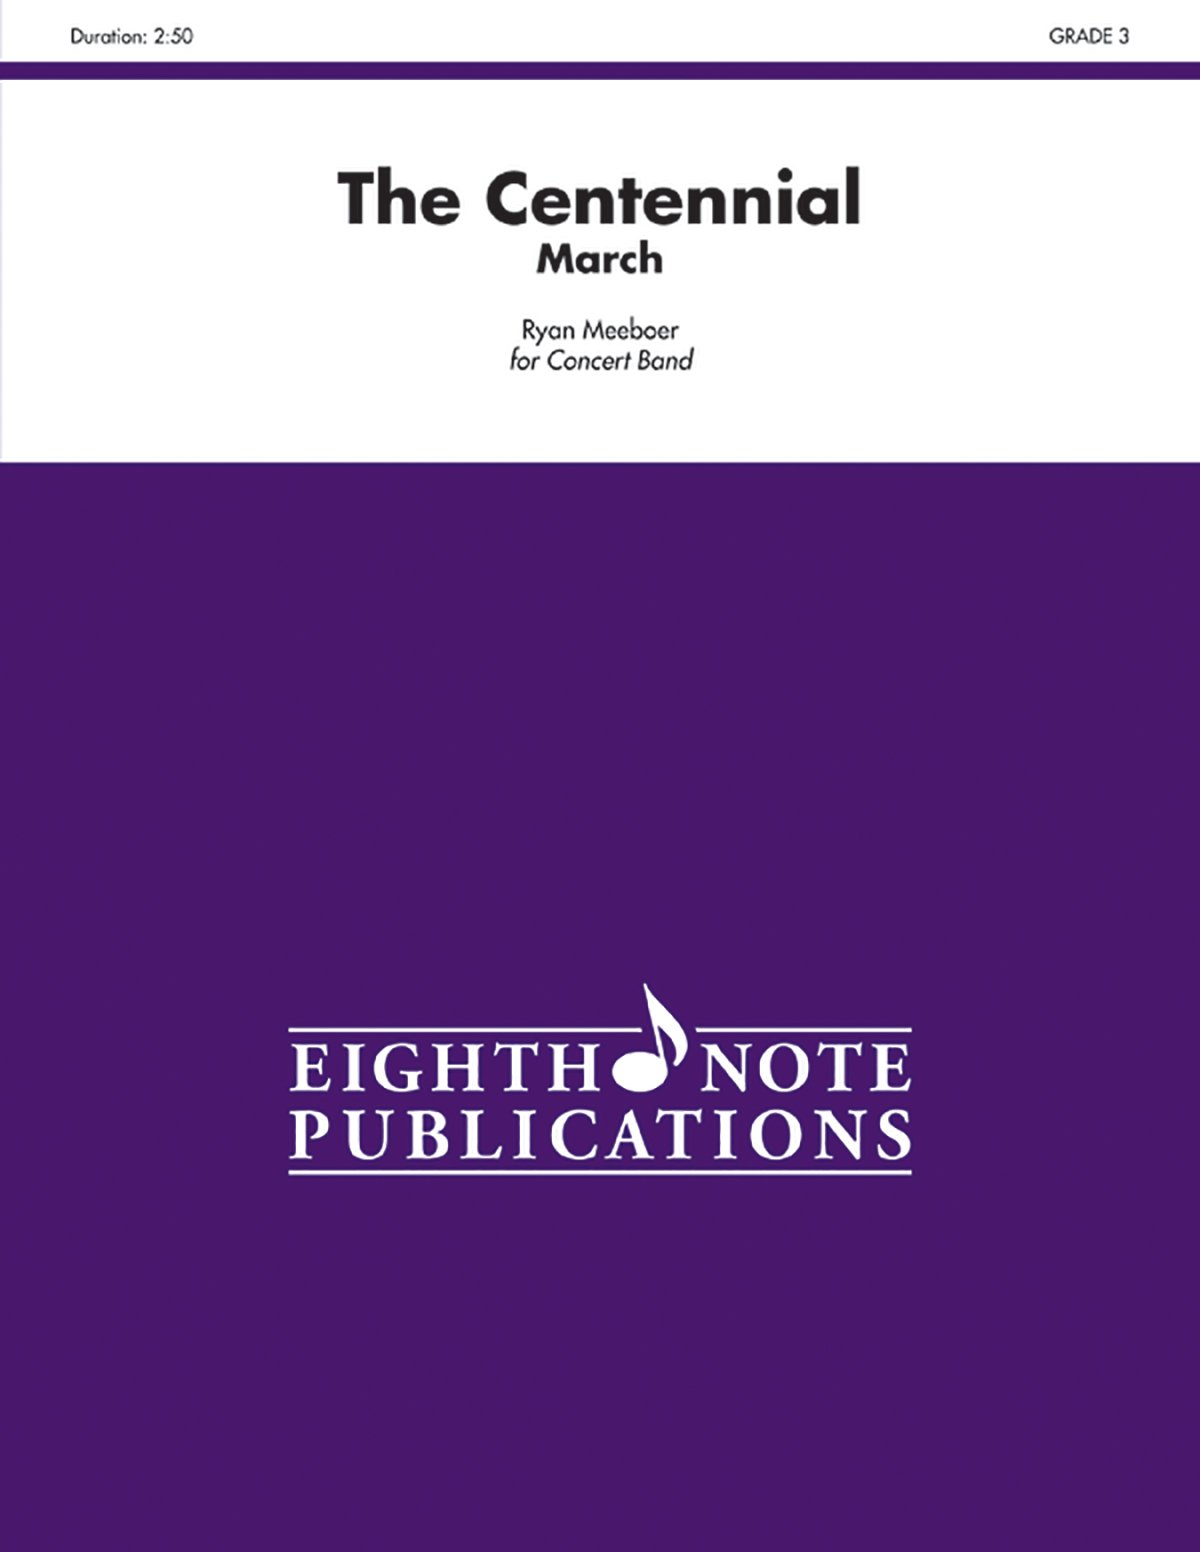 Download The Centennial: March, Conductor Score & Parts (Eighth Note Publications) PDF